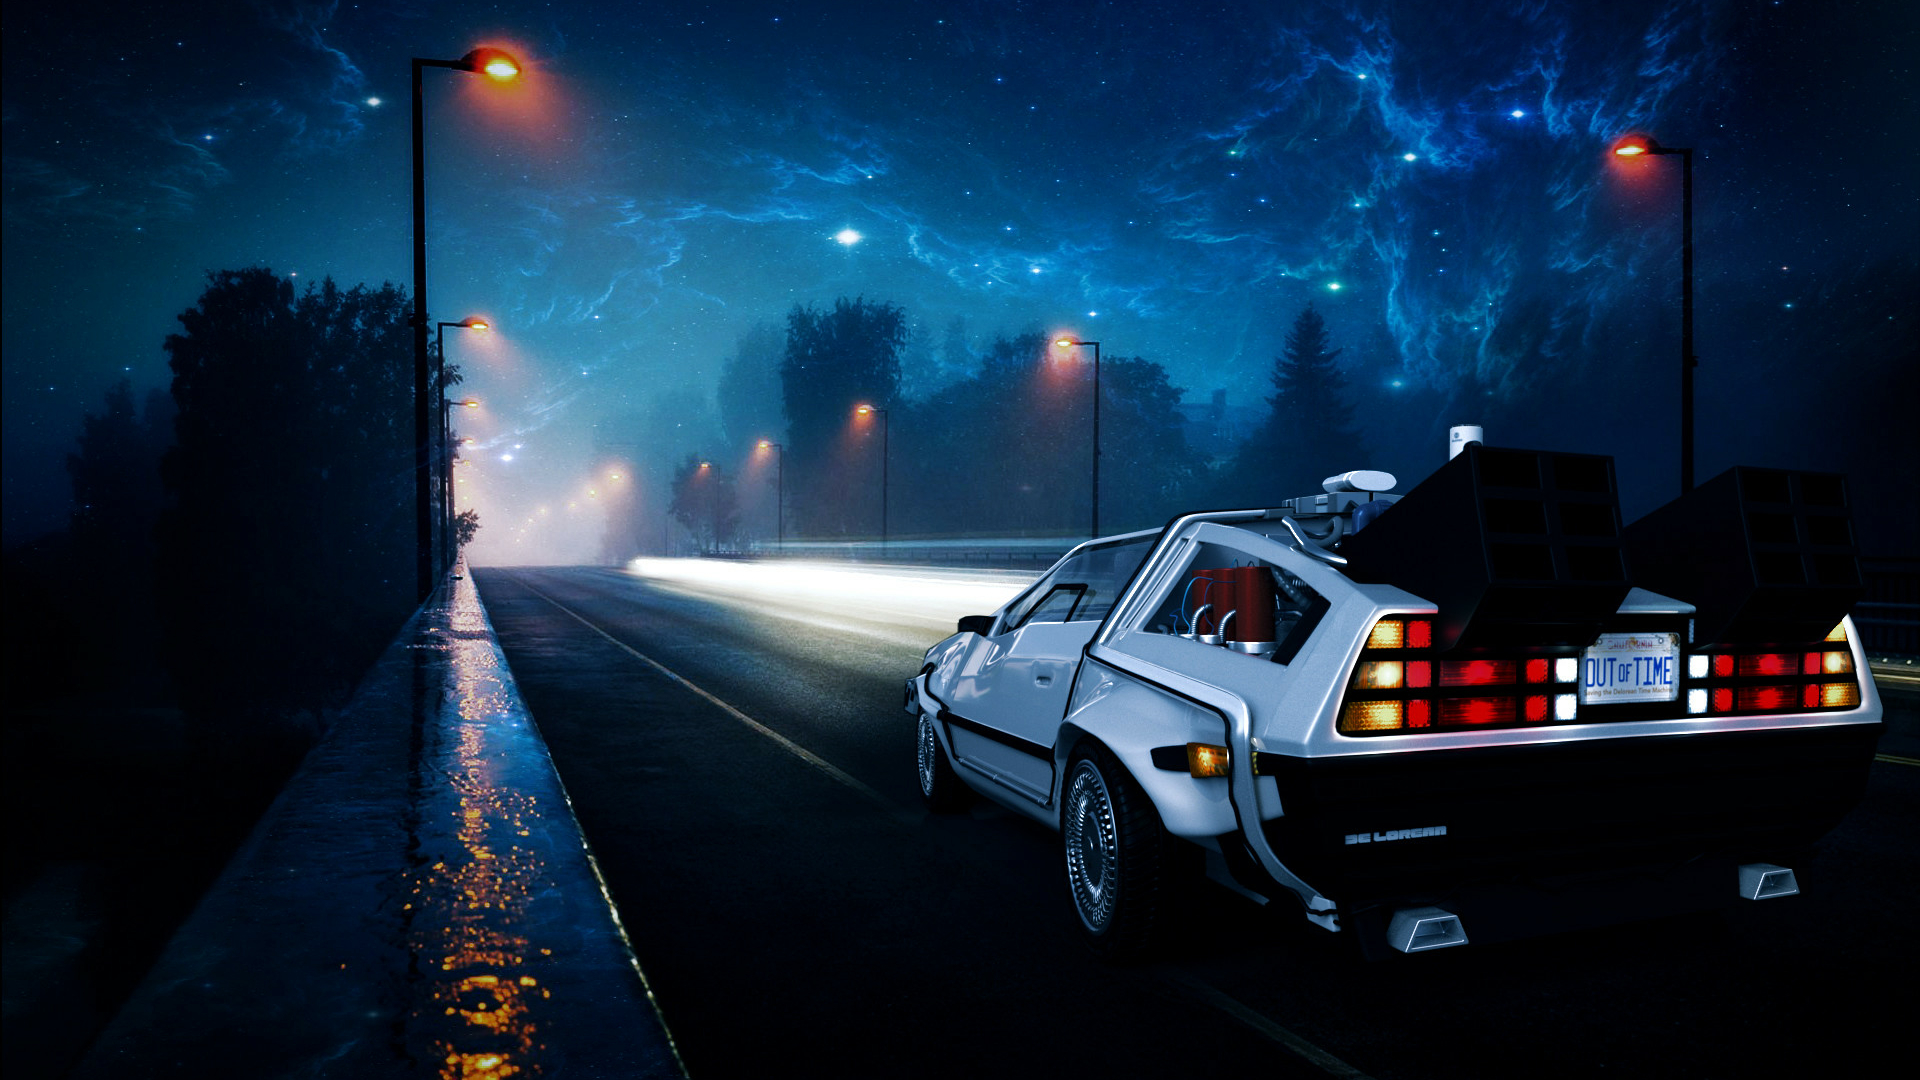 Back To The Future Delorean Car Illustration Full Hd